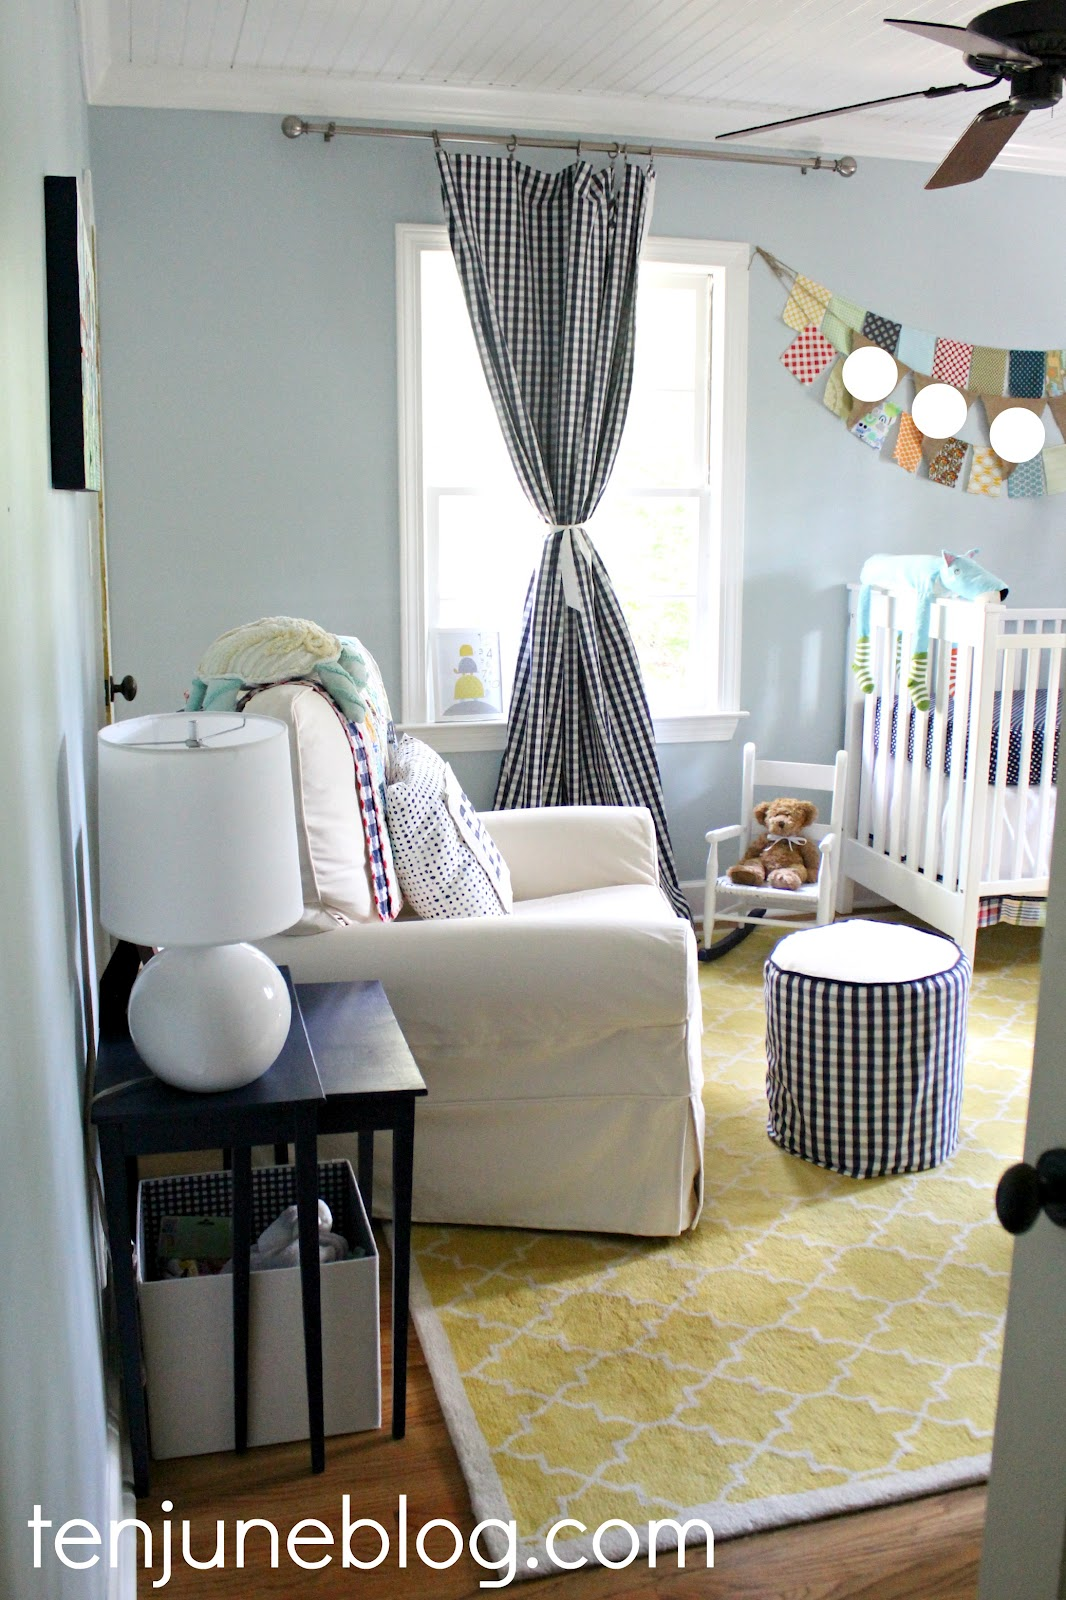 Slipcover For Rocking Chair Glider Hanging From Tree Ten June: Baby Boy Nursery Source List